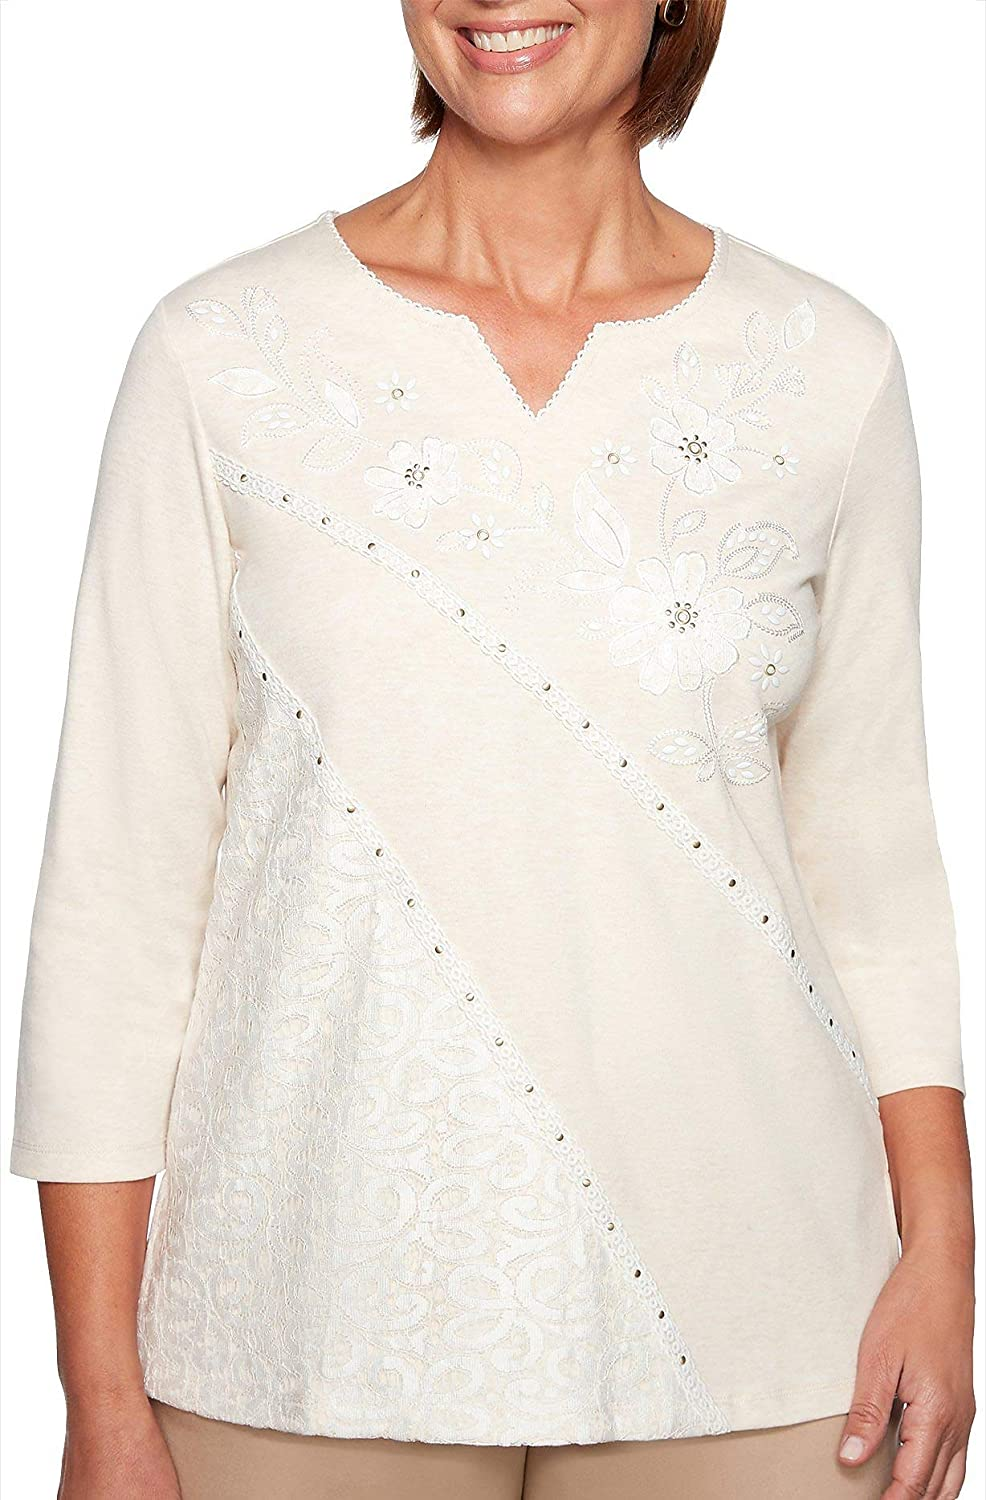 Alred Dunner Good to Go Asymmetrical Lace Top